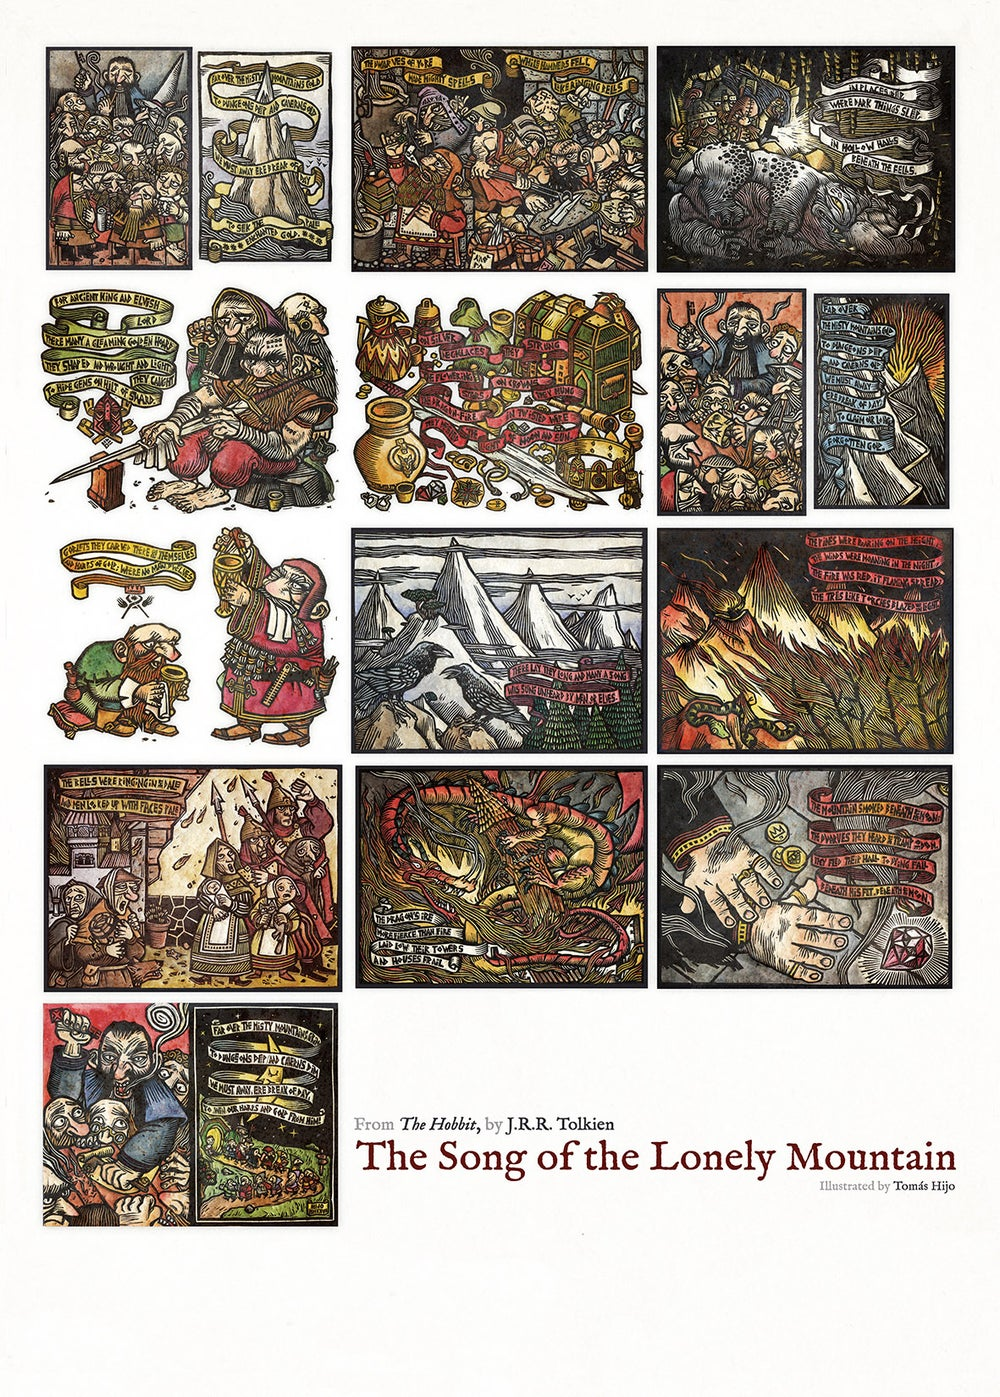 Image of The Song of the Lonely Mountain